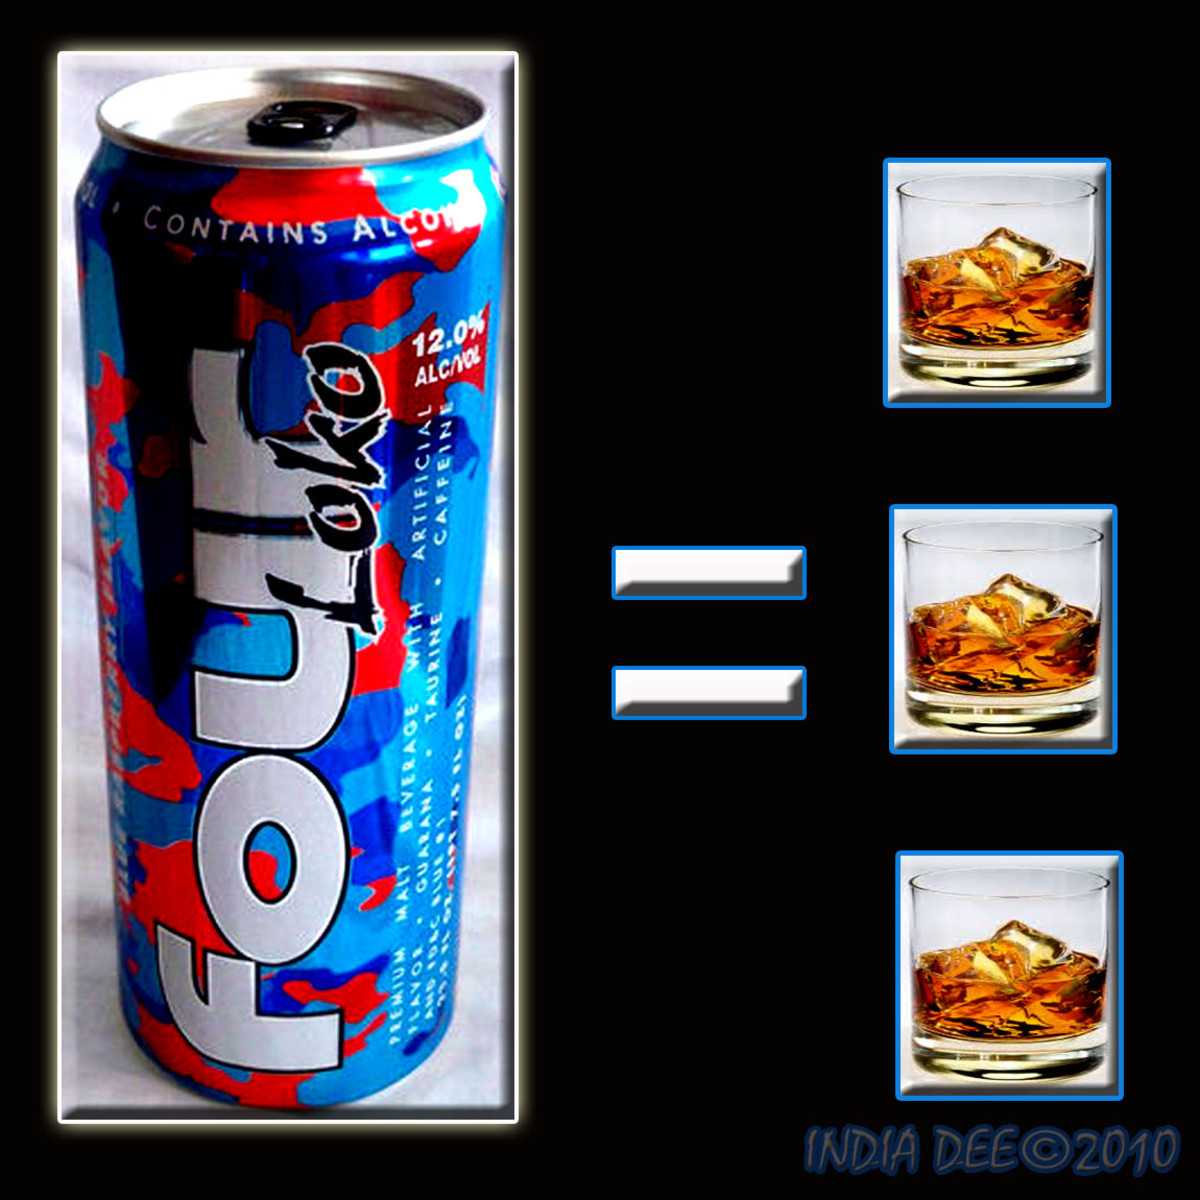 four-loko-quick-inebriation-with-a-boost-of-caffinated-energy